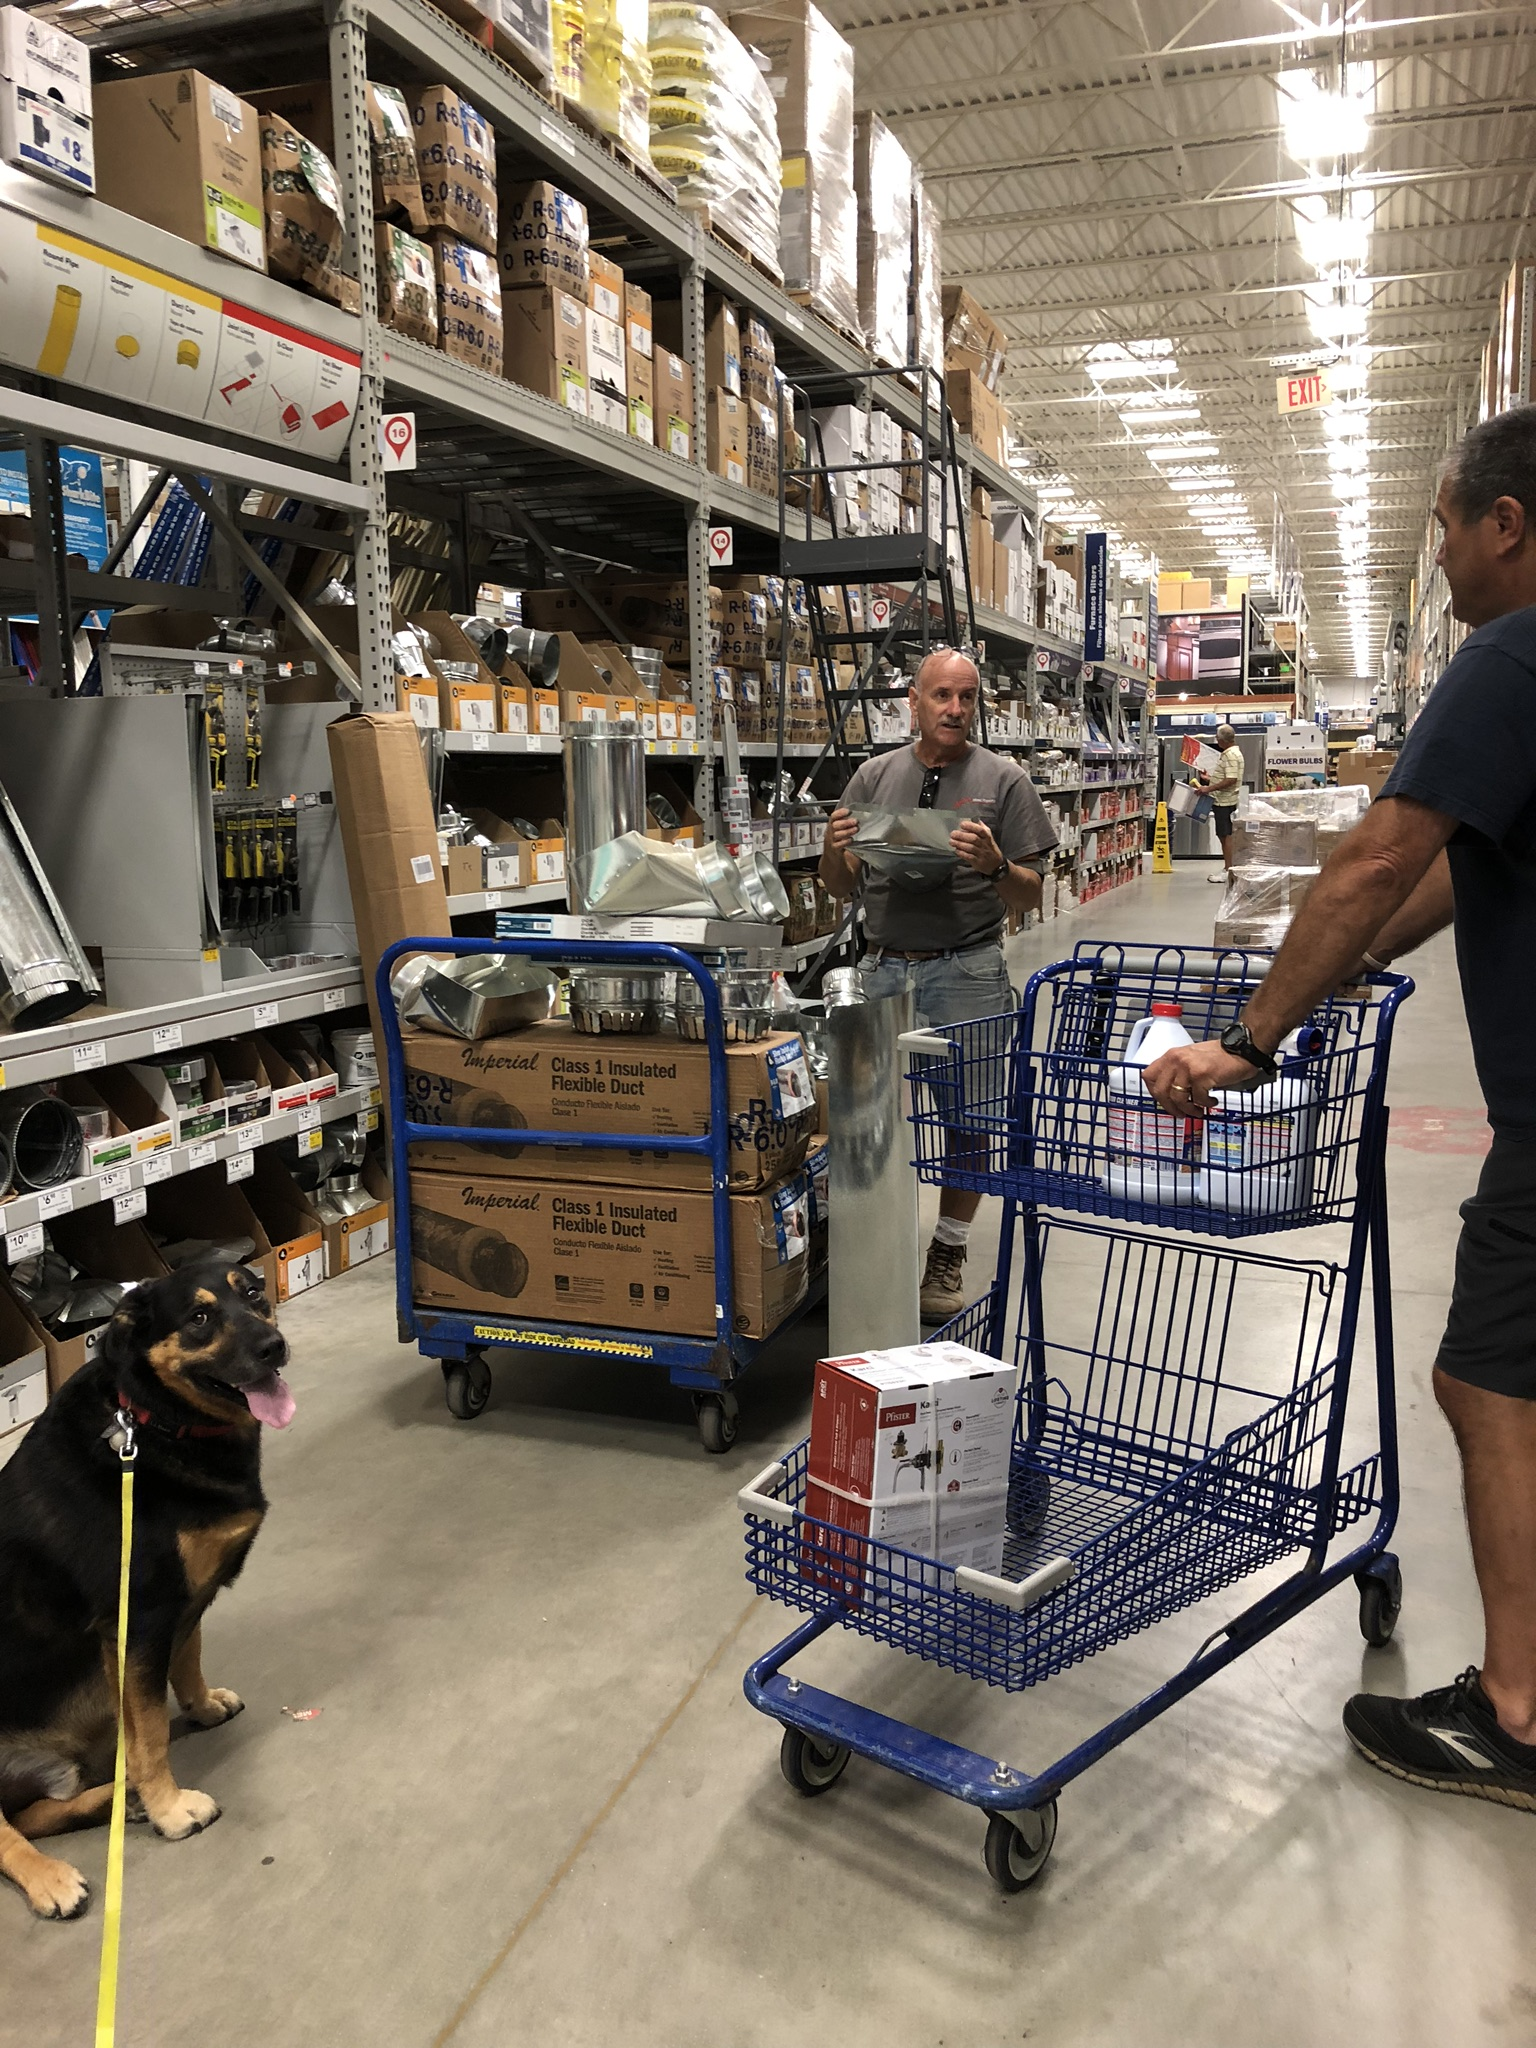 Shopping at Lowe's in Bedford, VA for supplies for our lake basement project